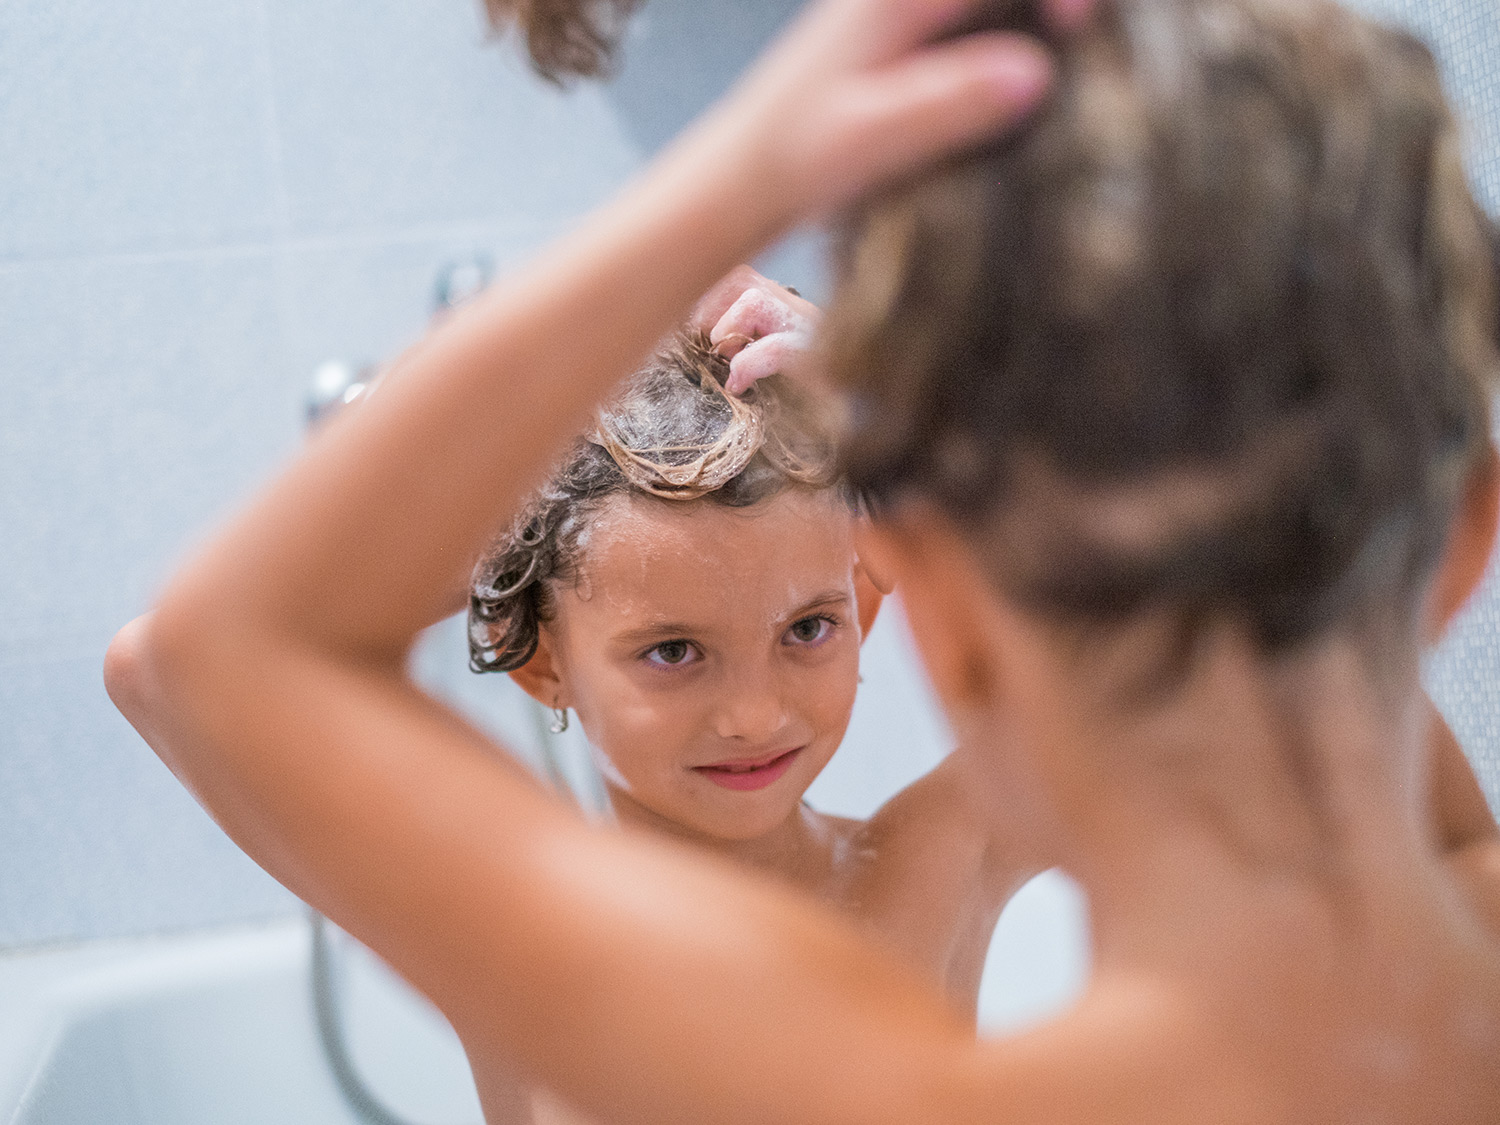 Guide To Personal Hygiene For Kids